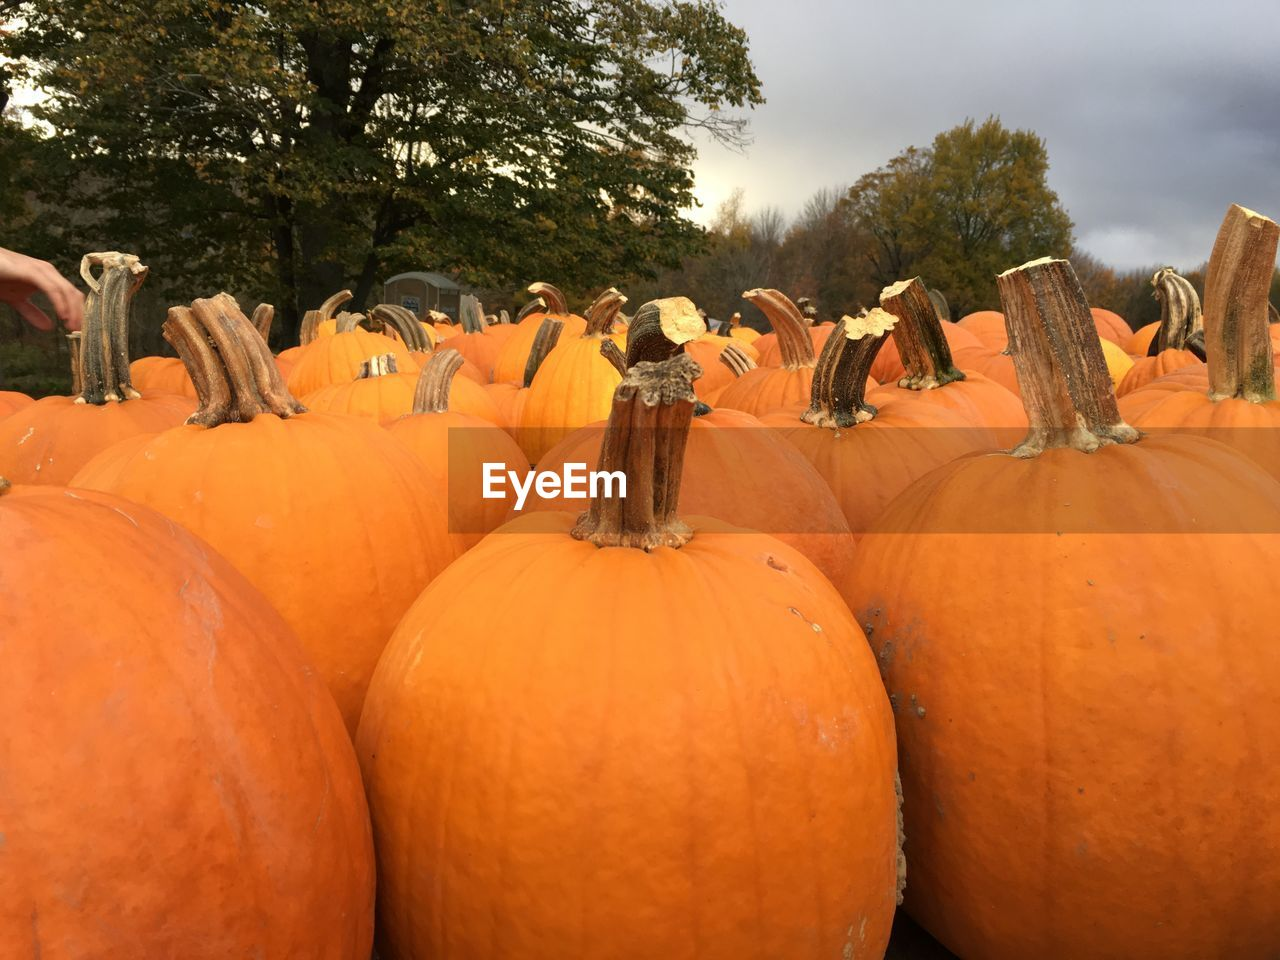 Close-Up Of Pumpkins Against Trees